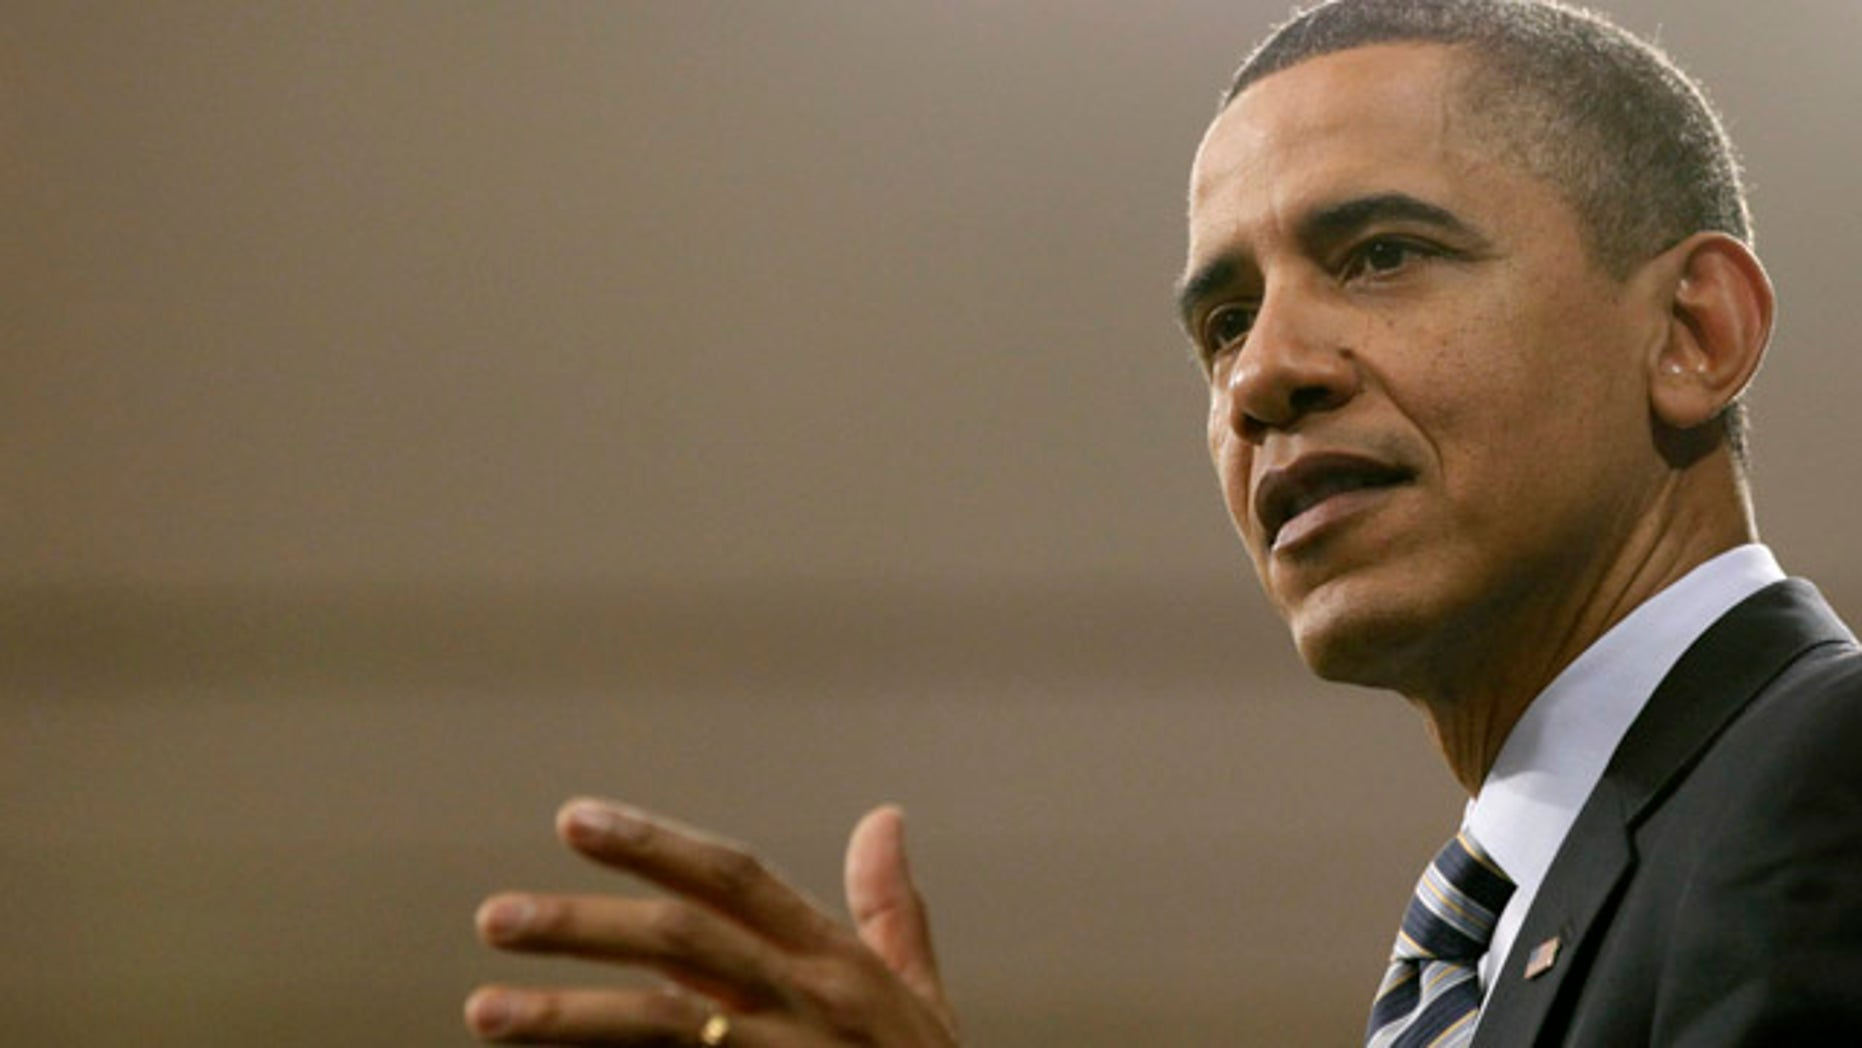 Feb. 10, 2011: President Barack Obama speaks at Northern Michigan University in Marquette, Mich.